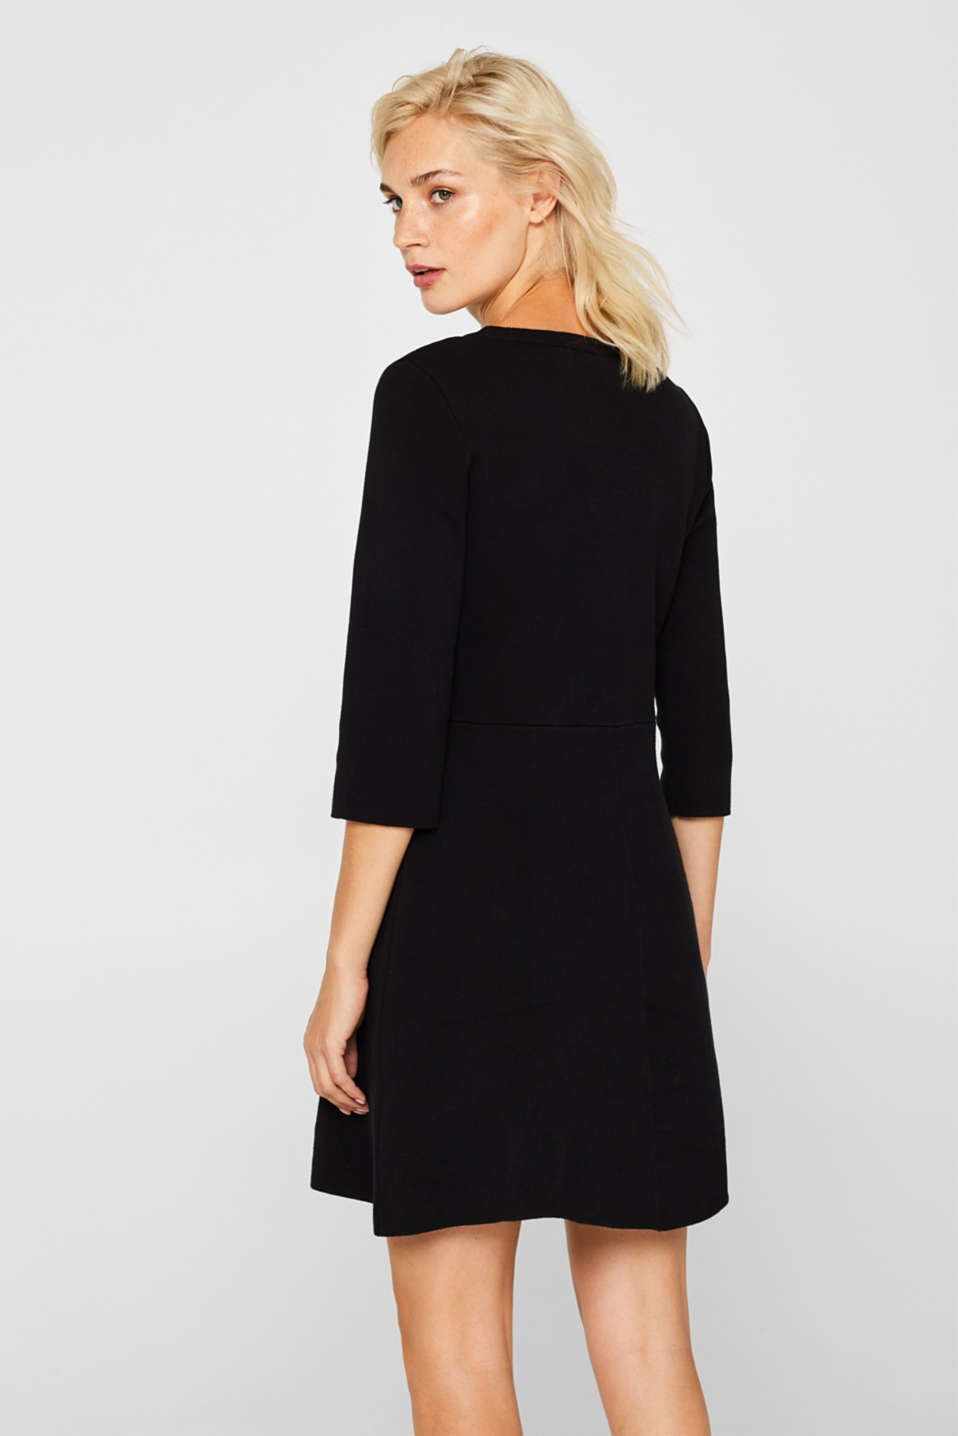 Compact knit dress in an A-line silhouette, BLACK, detail image number 1